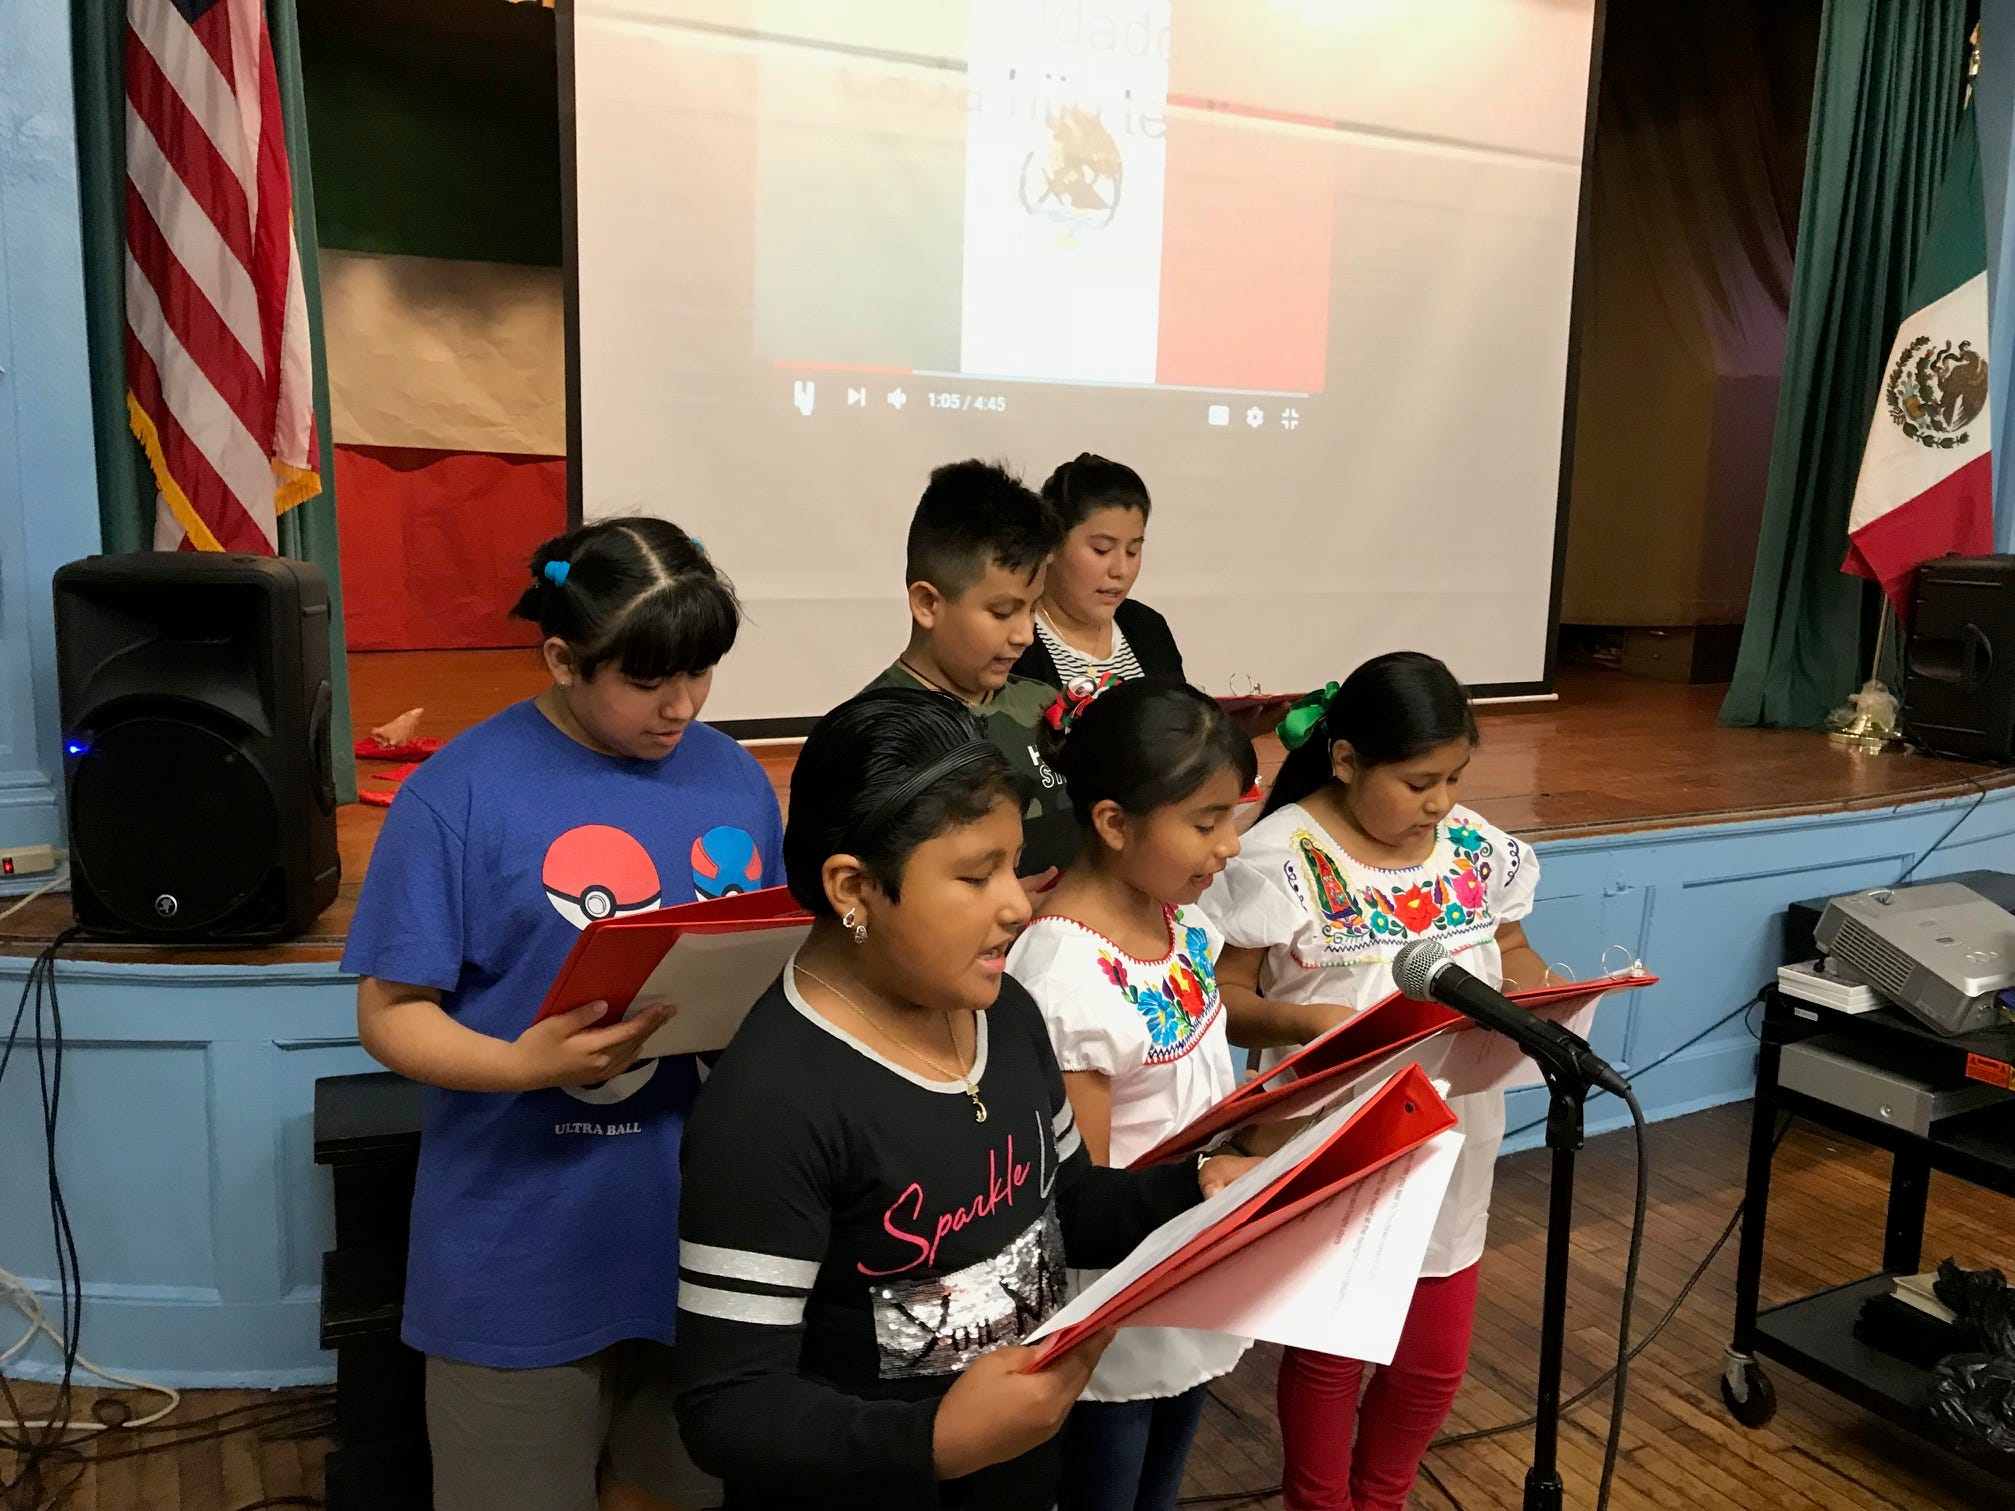 After the singing of the Star Spangled Banner, students at School No. 5 lead audience in the singing of the Mexican National Anthem.